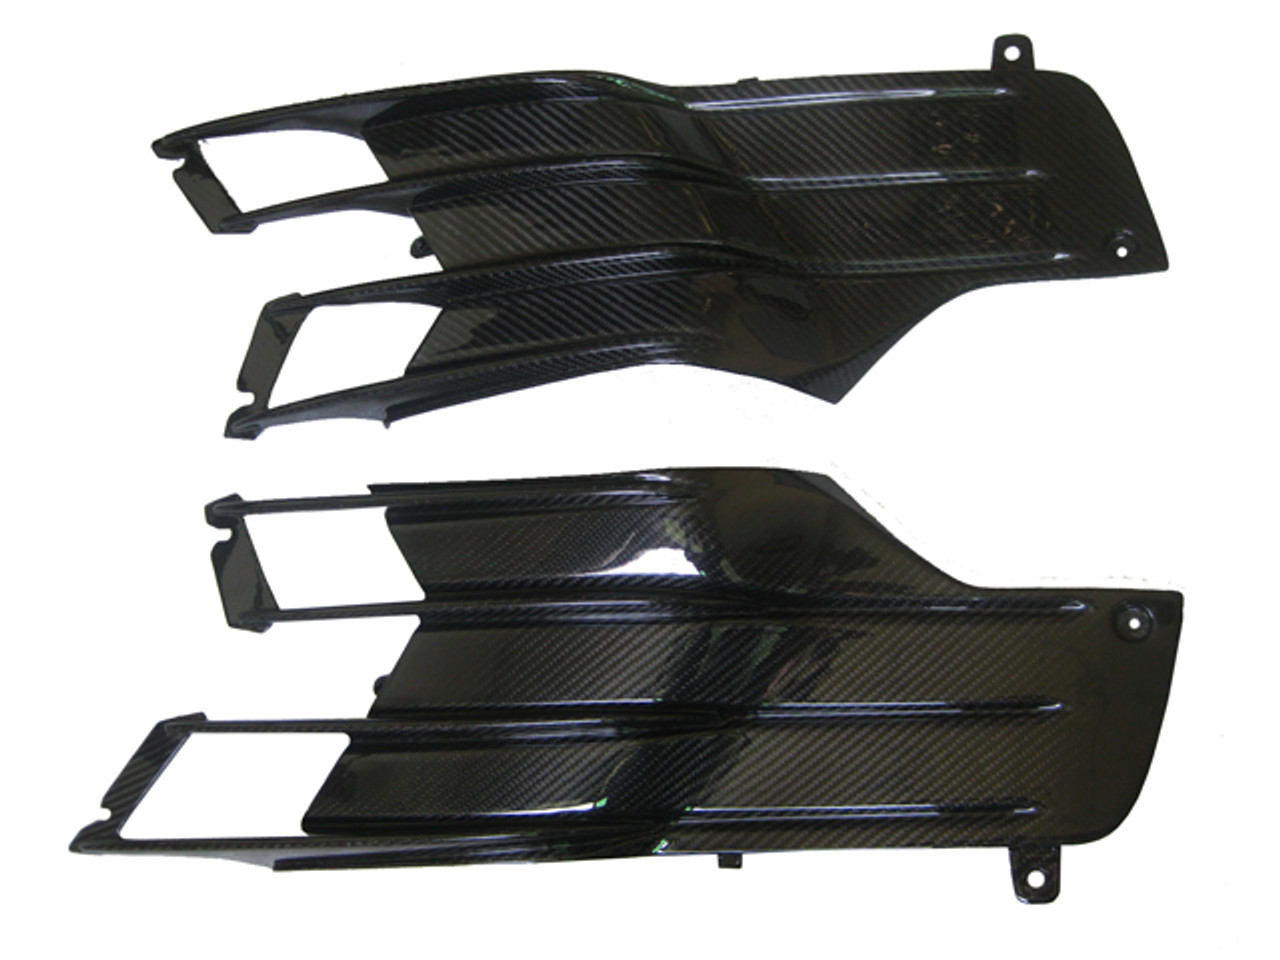 Under Tank Fittings for Kawasaki ZX14R-ZZR1400 2012+ in Glossy Plain Weave Carbon Fiber